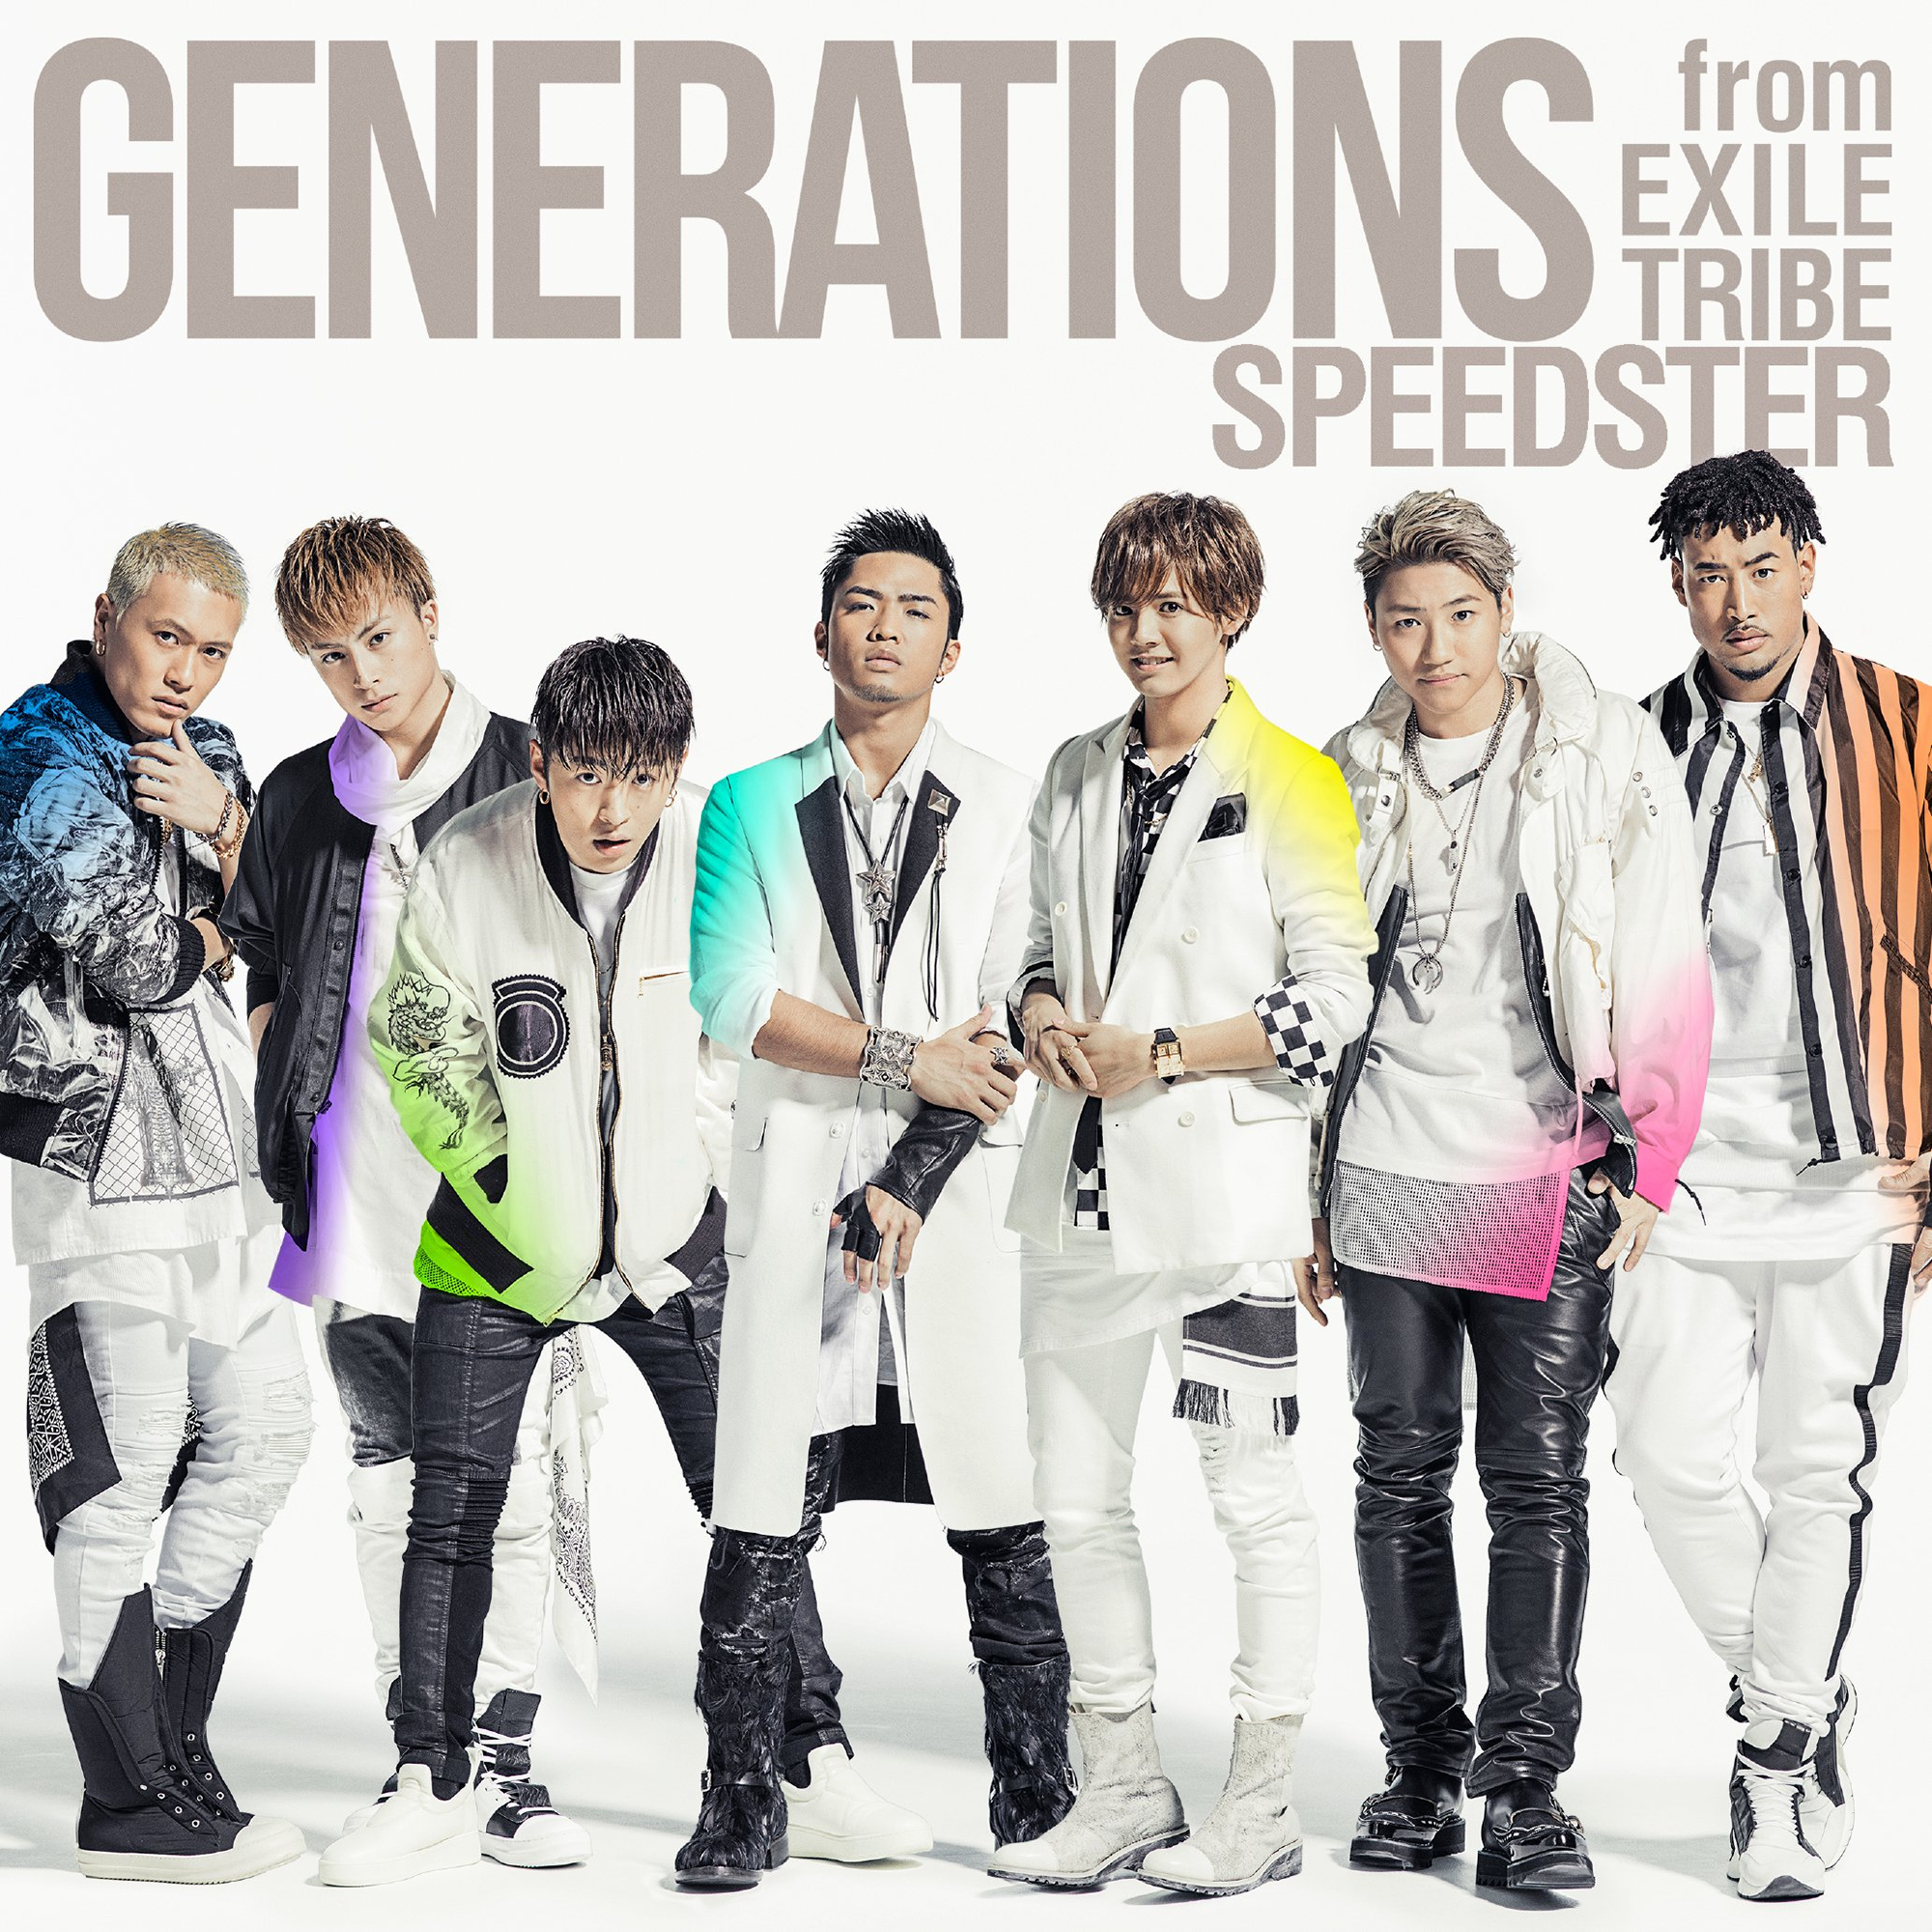 GENERATIONS from EXILE TRIBEのメンバーとして活動